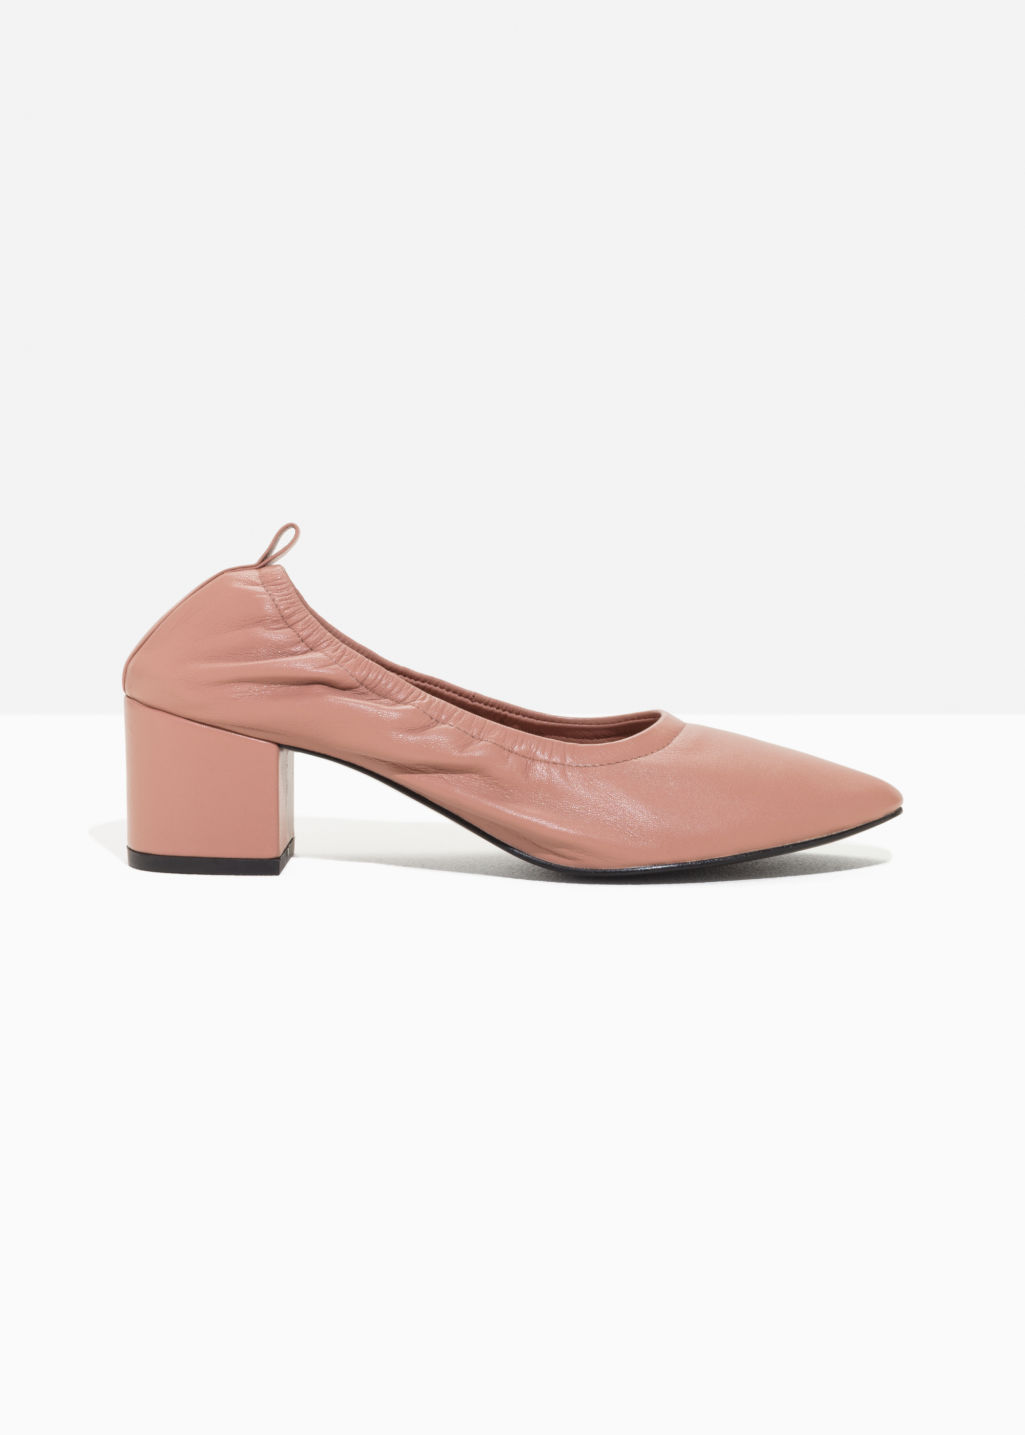 & OTHER STORIES Ballerina Leather Pumps XUSp1kElF